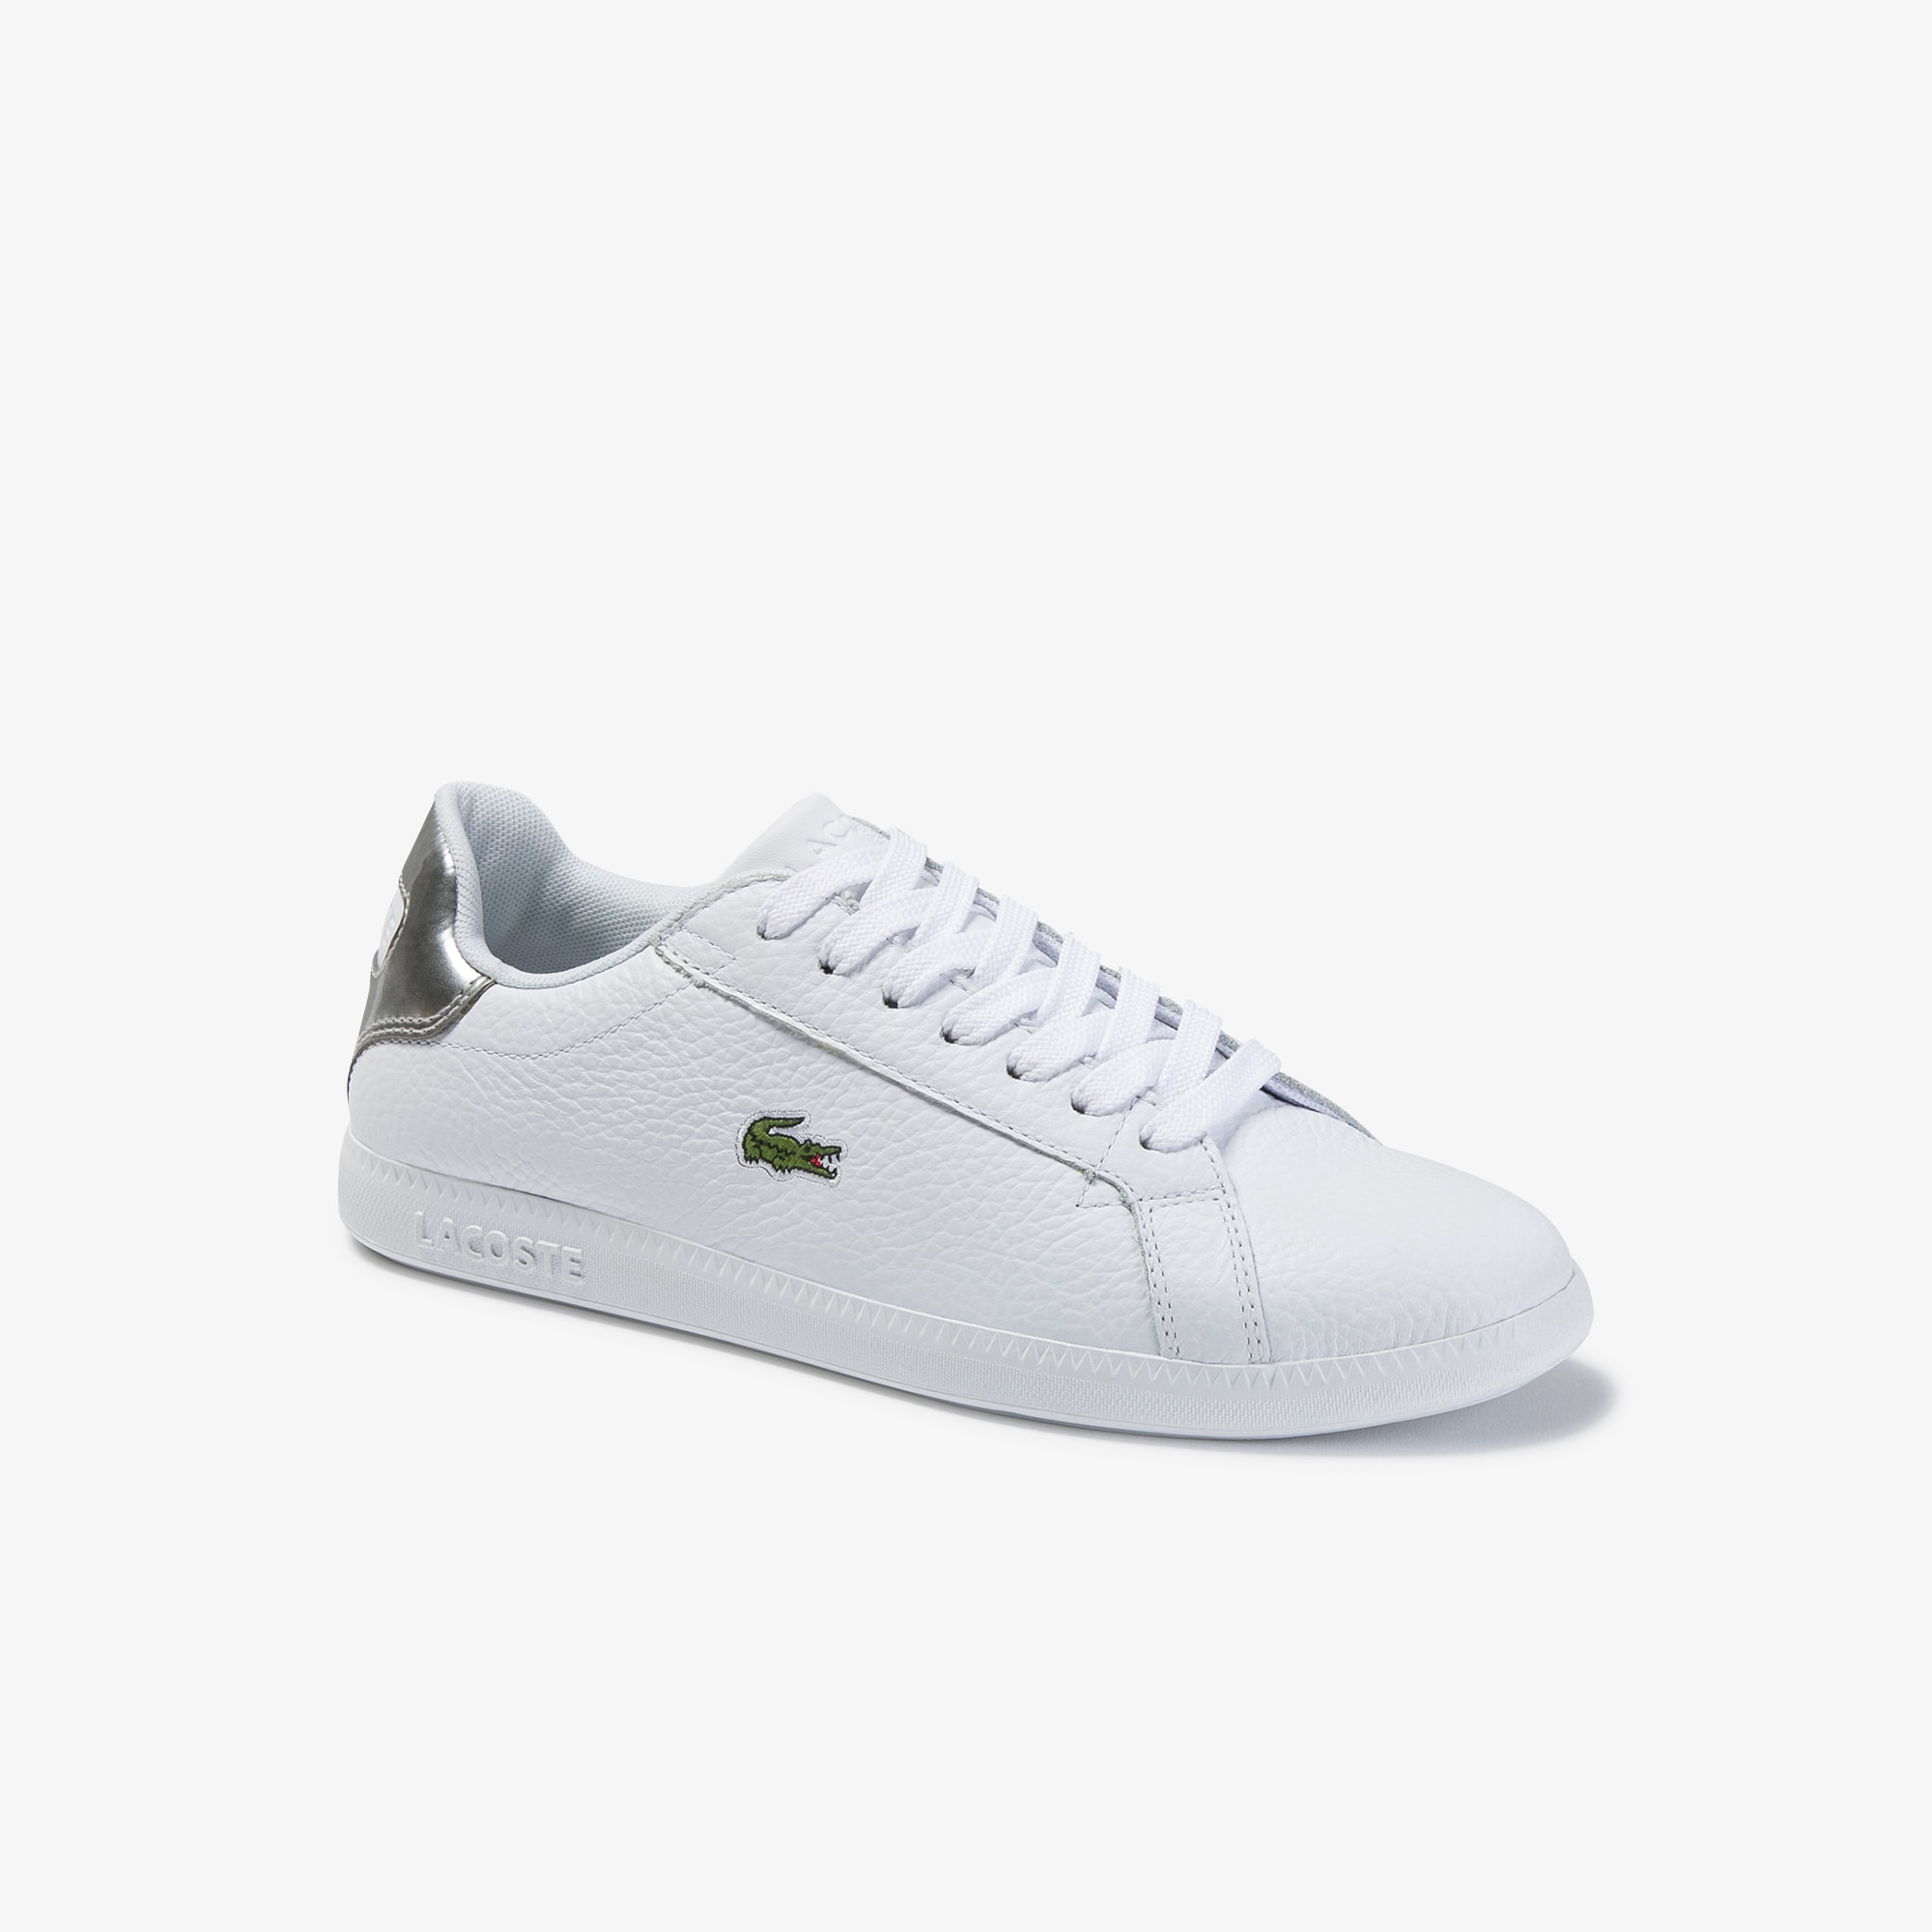 Women's Graduate Leather Trainers   LACOSTE